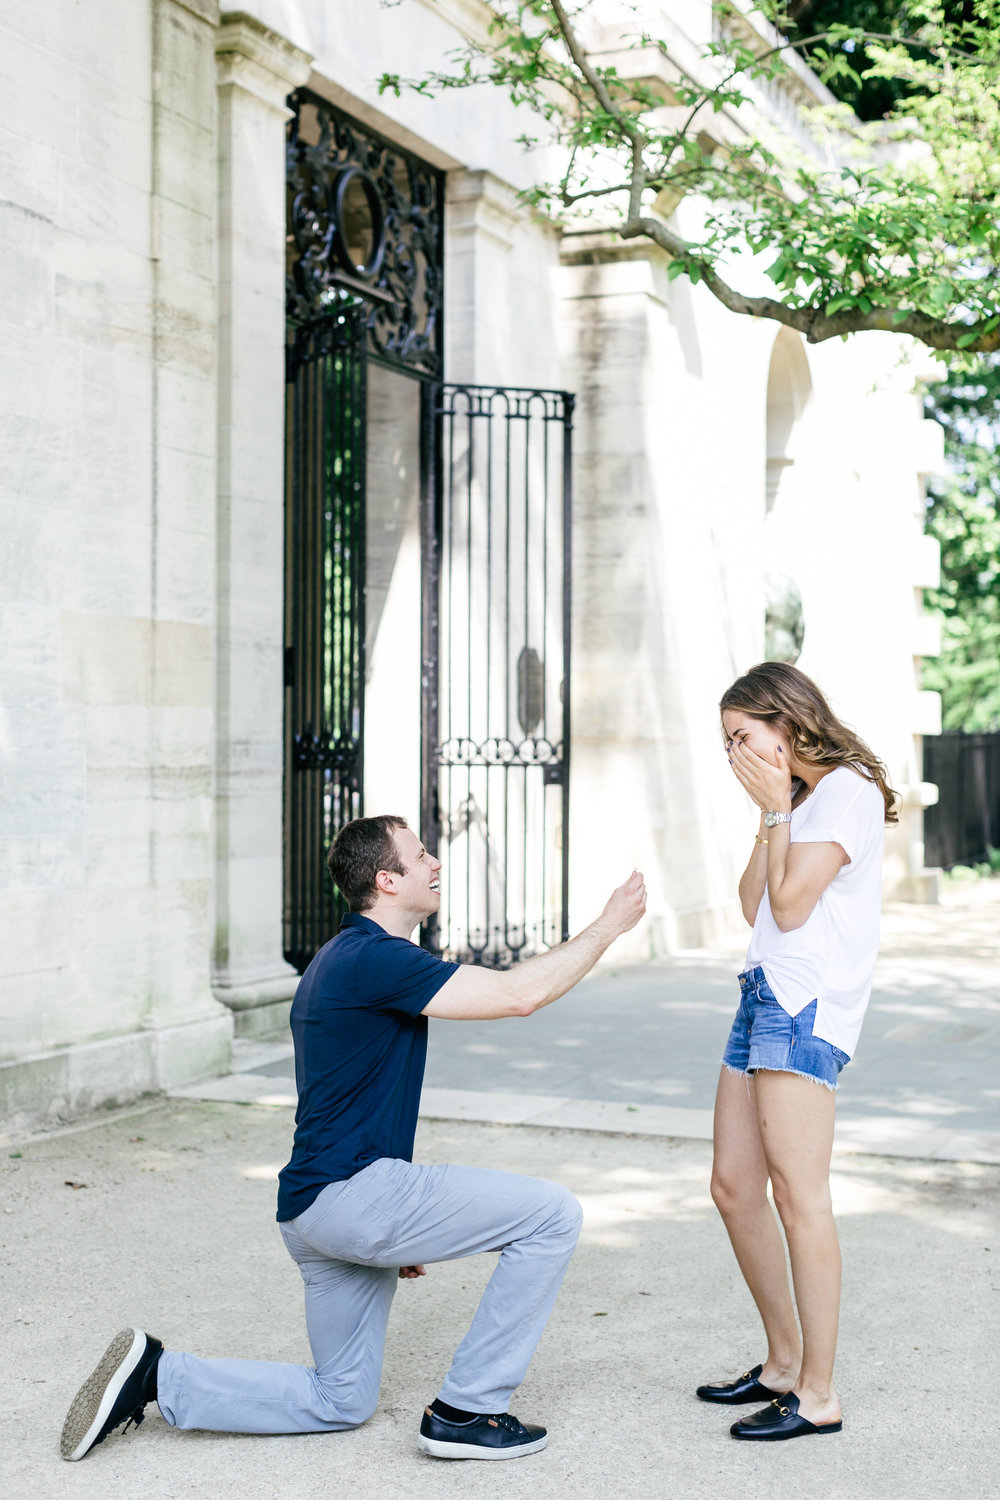 photography-natural-candid-engaged-proposal-philadelphia-wedding-rodin museum-barnes foundation-parkway-modern-lifestyle-01.JPG